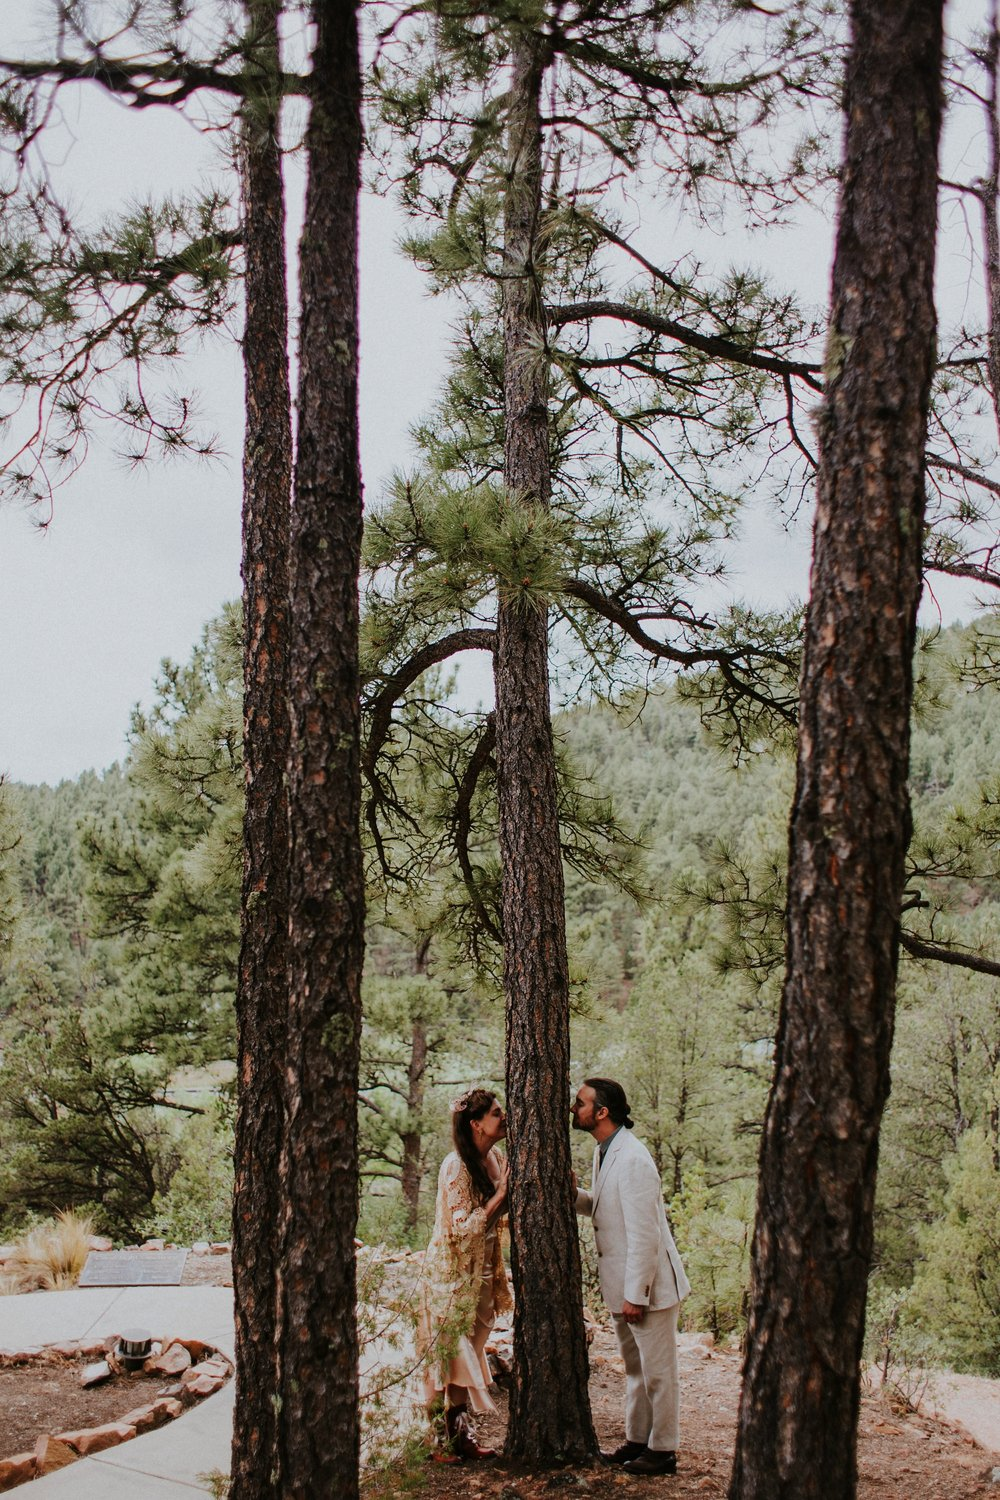 0000000000000000000082_Dwan-Light-Sanctuary-Wedding-Photos_Johnson-Mumford_Rainbow-Wedding_Montezuma-New-Mexico-Wedding-Photography-81.jpg